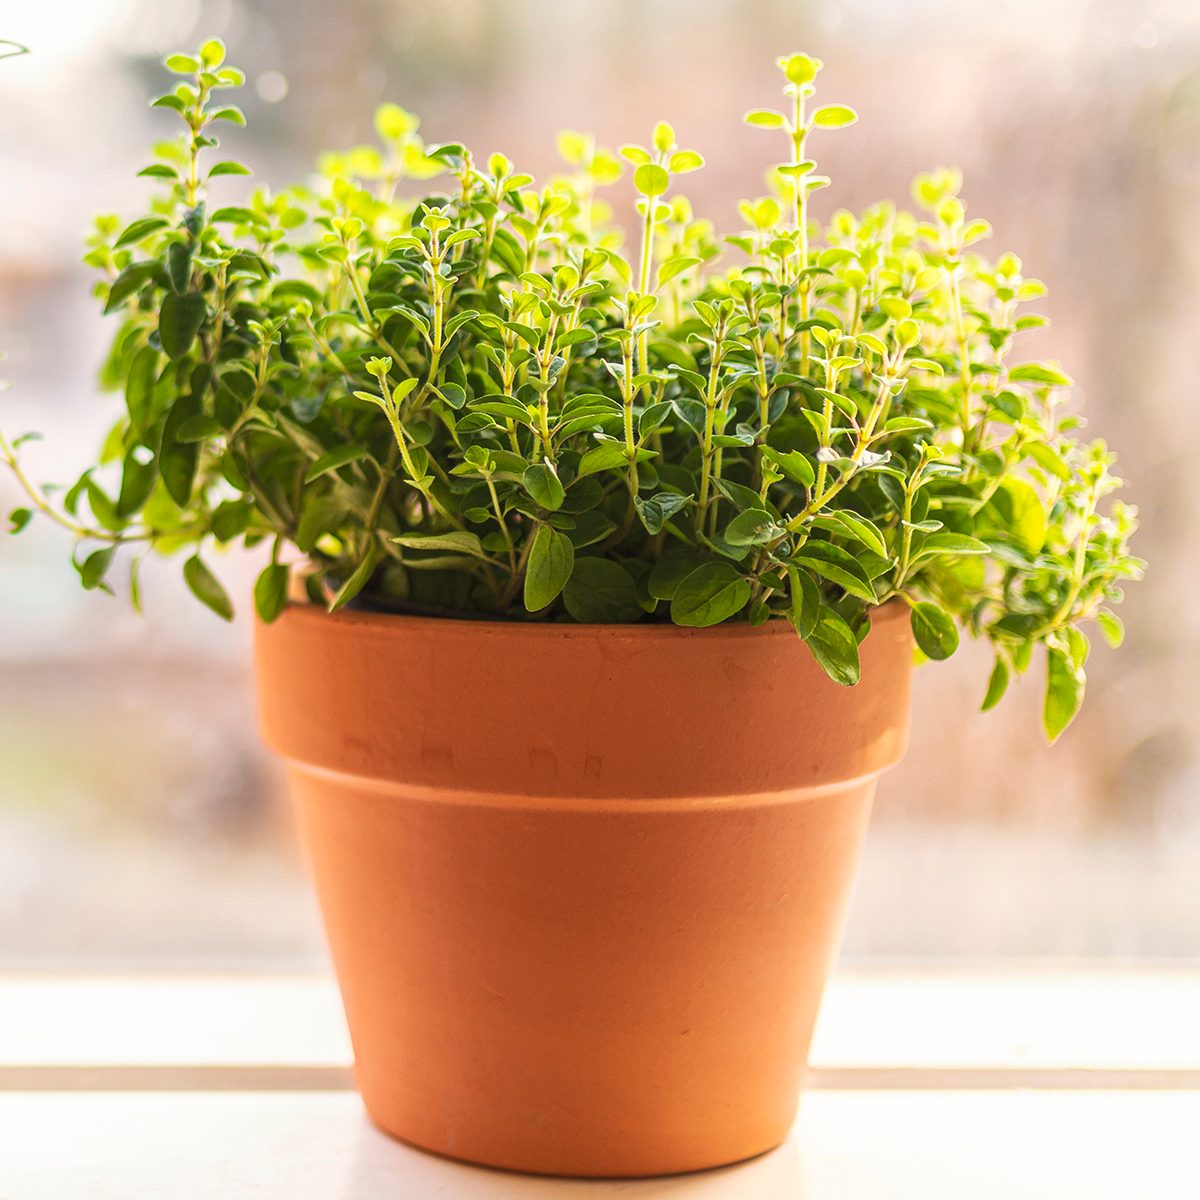 Two terracotta pots with fresh homegrown organic herbs in a window sill in the early spring. One is rosemary and the other one is with oregano.